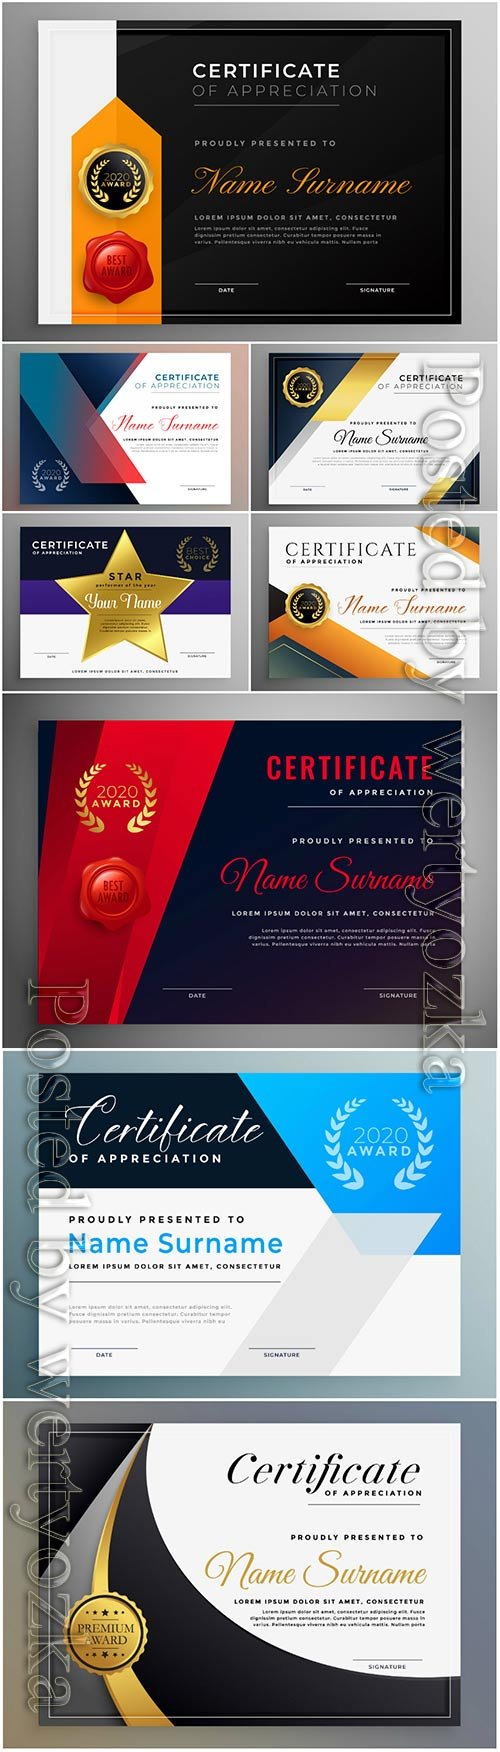 Certificate of appreciation professional vector template